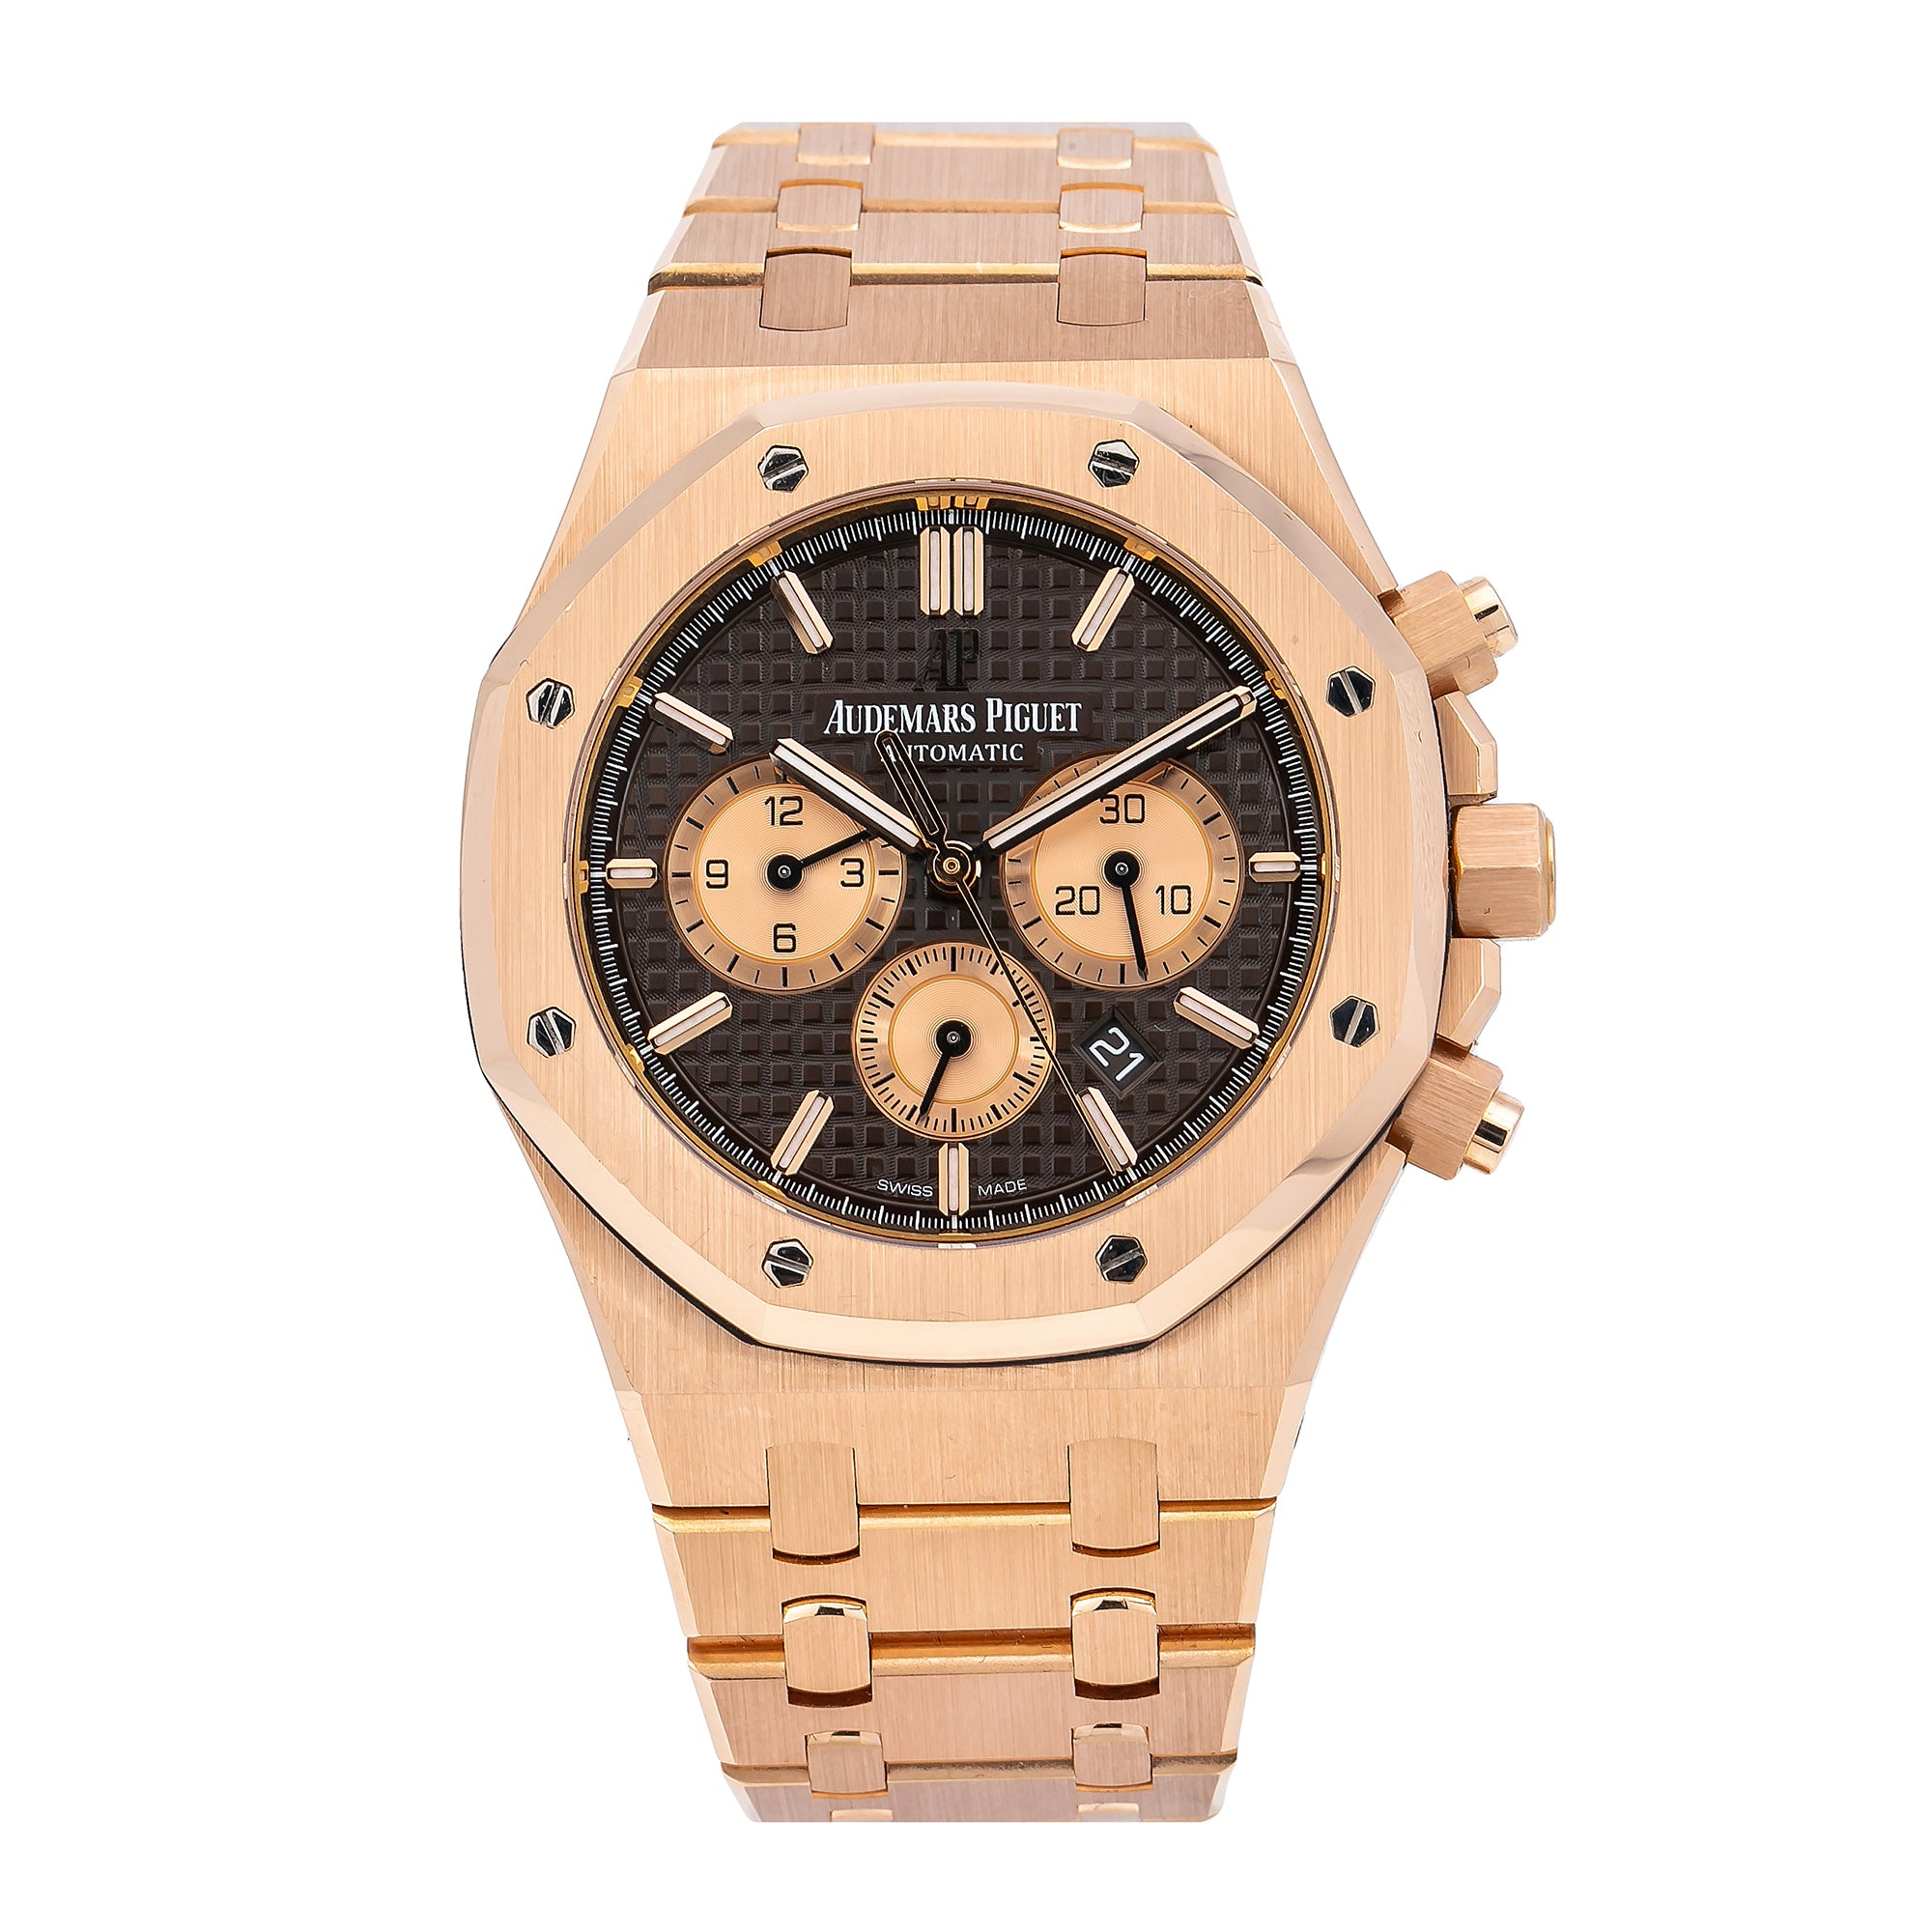 Audemars Piguet Royal Oak Chronograph 26331OR 41MM Black Dial With Rose Gold Bracelet